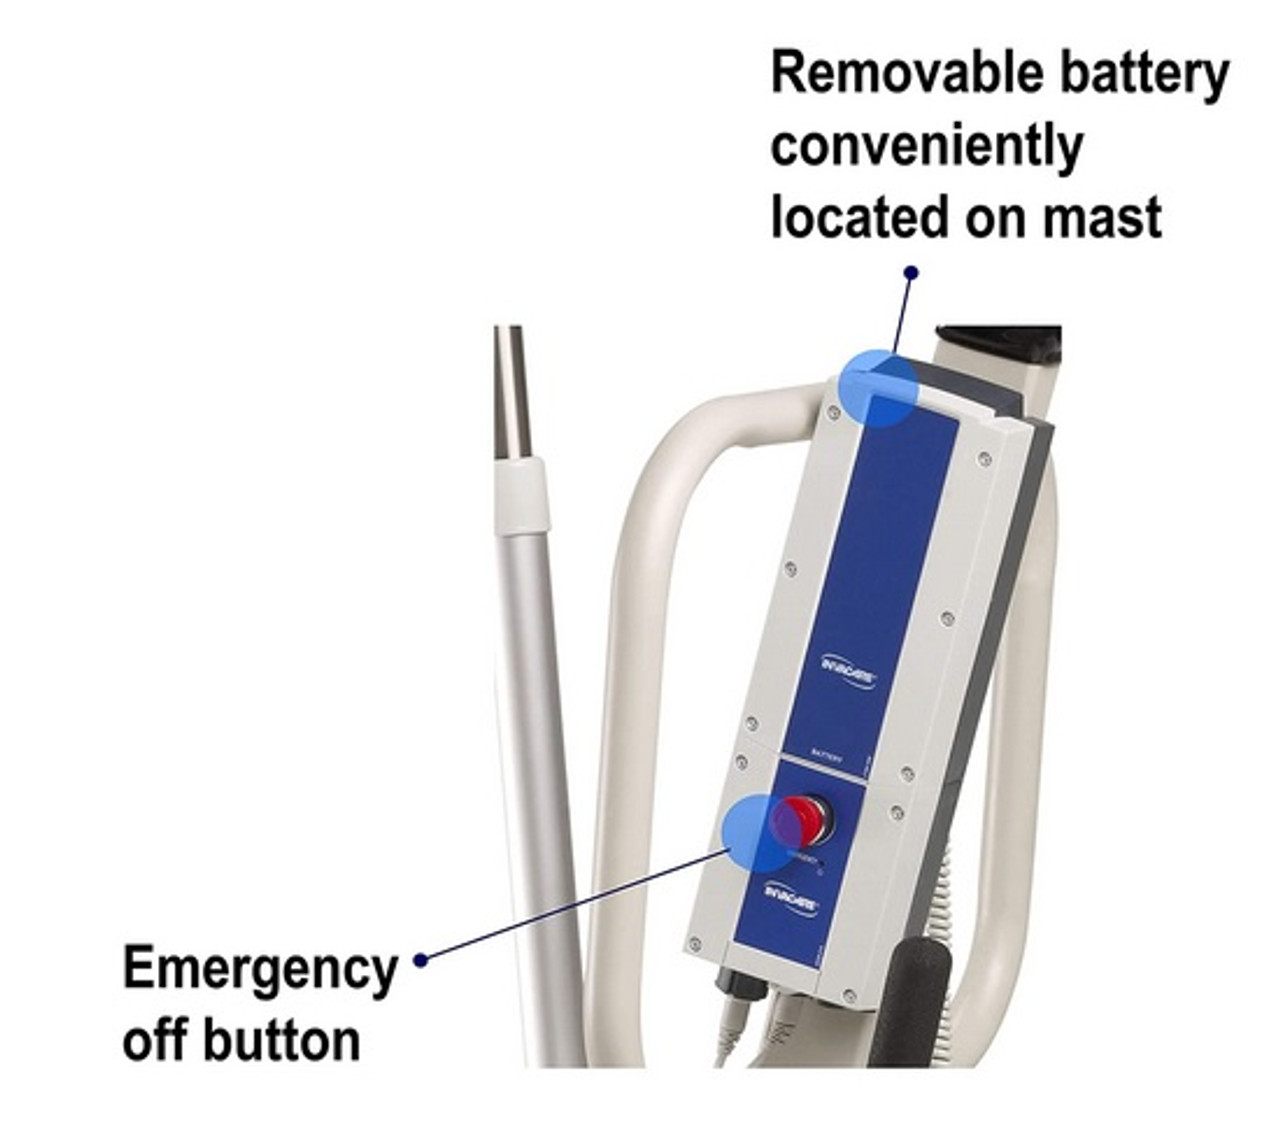 Reliant 450 Battery-Powered Lift with Power-Opening Low Base, by Invacare